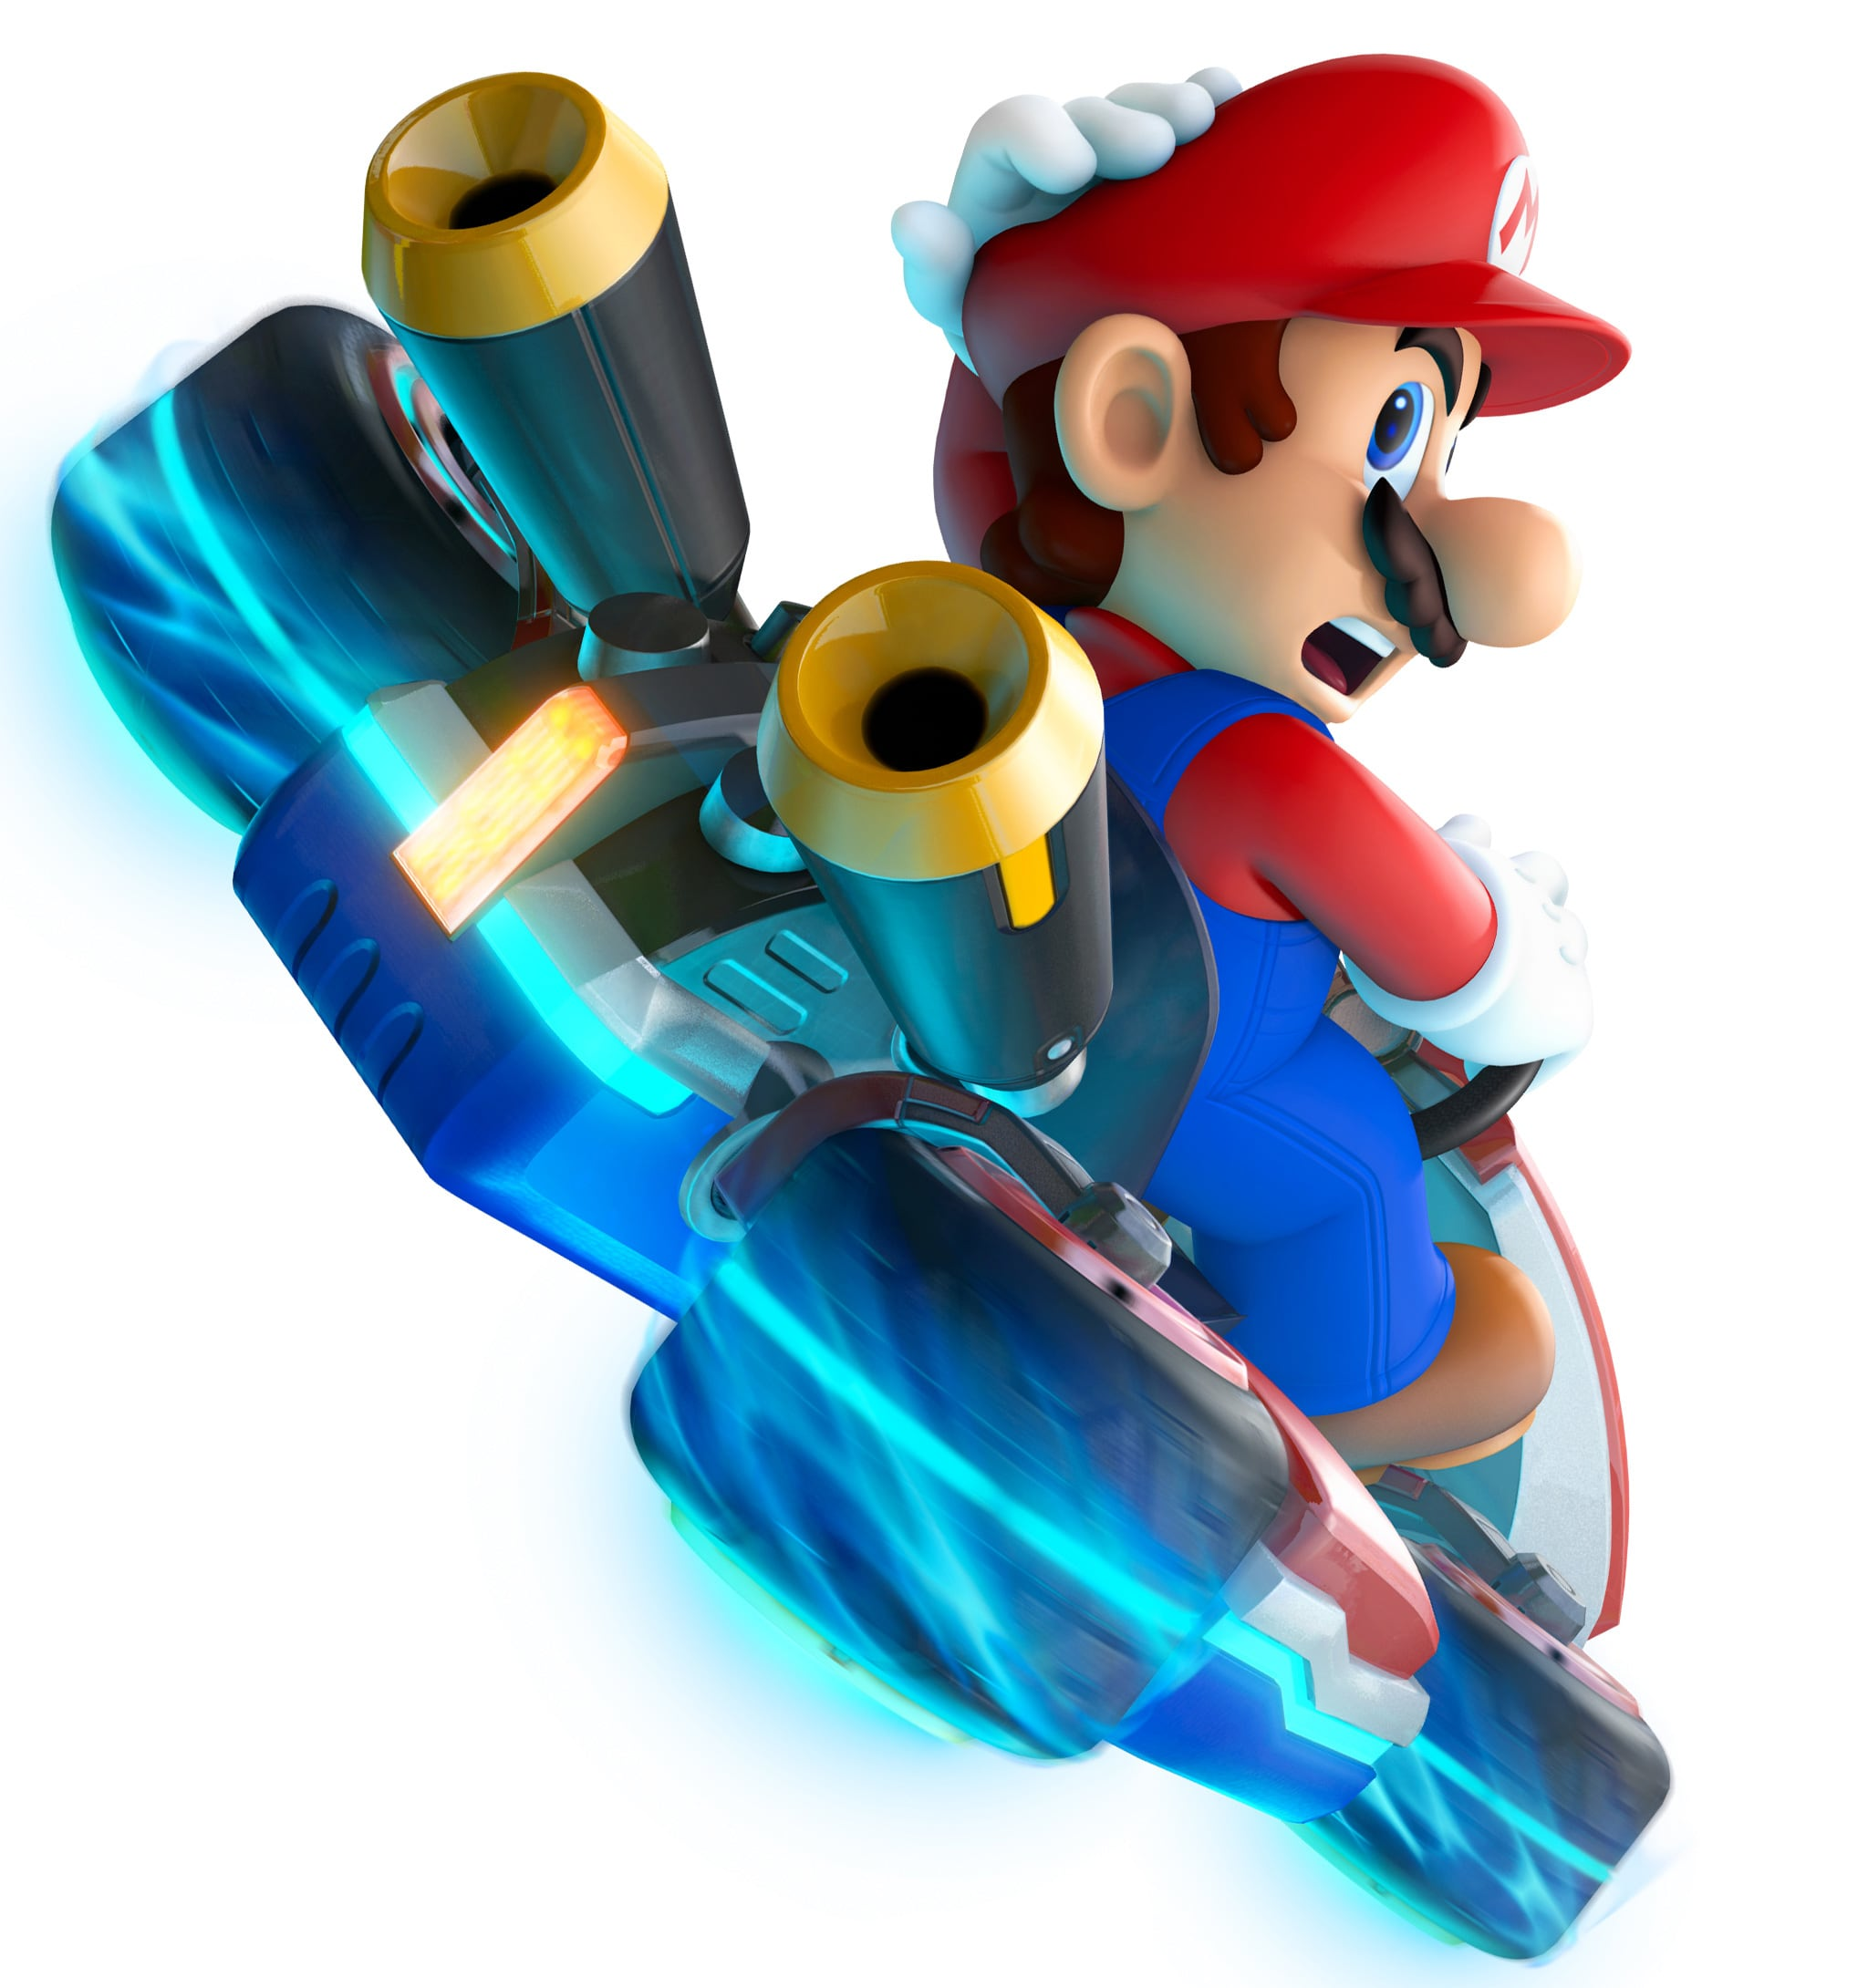 GAME review: Mario Kart 8 on Wii U.